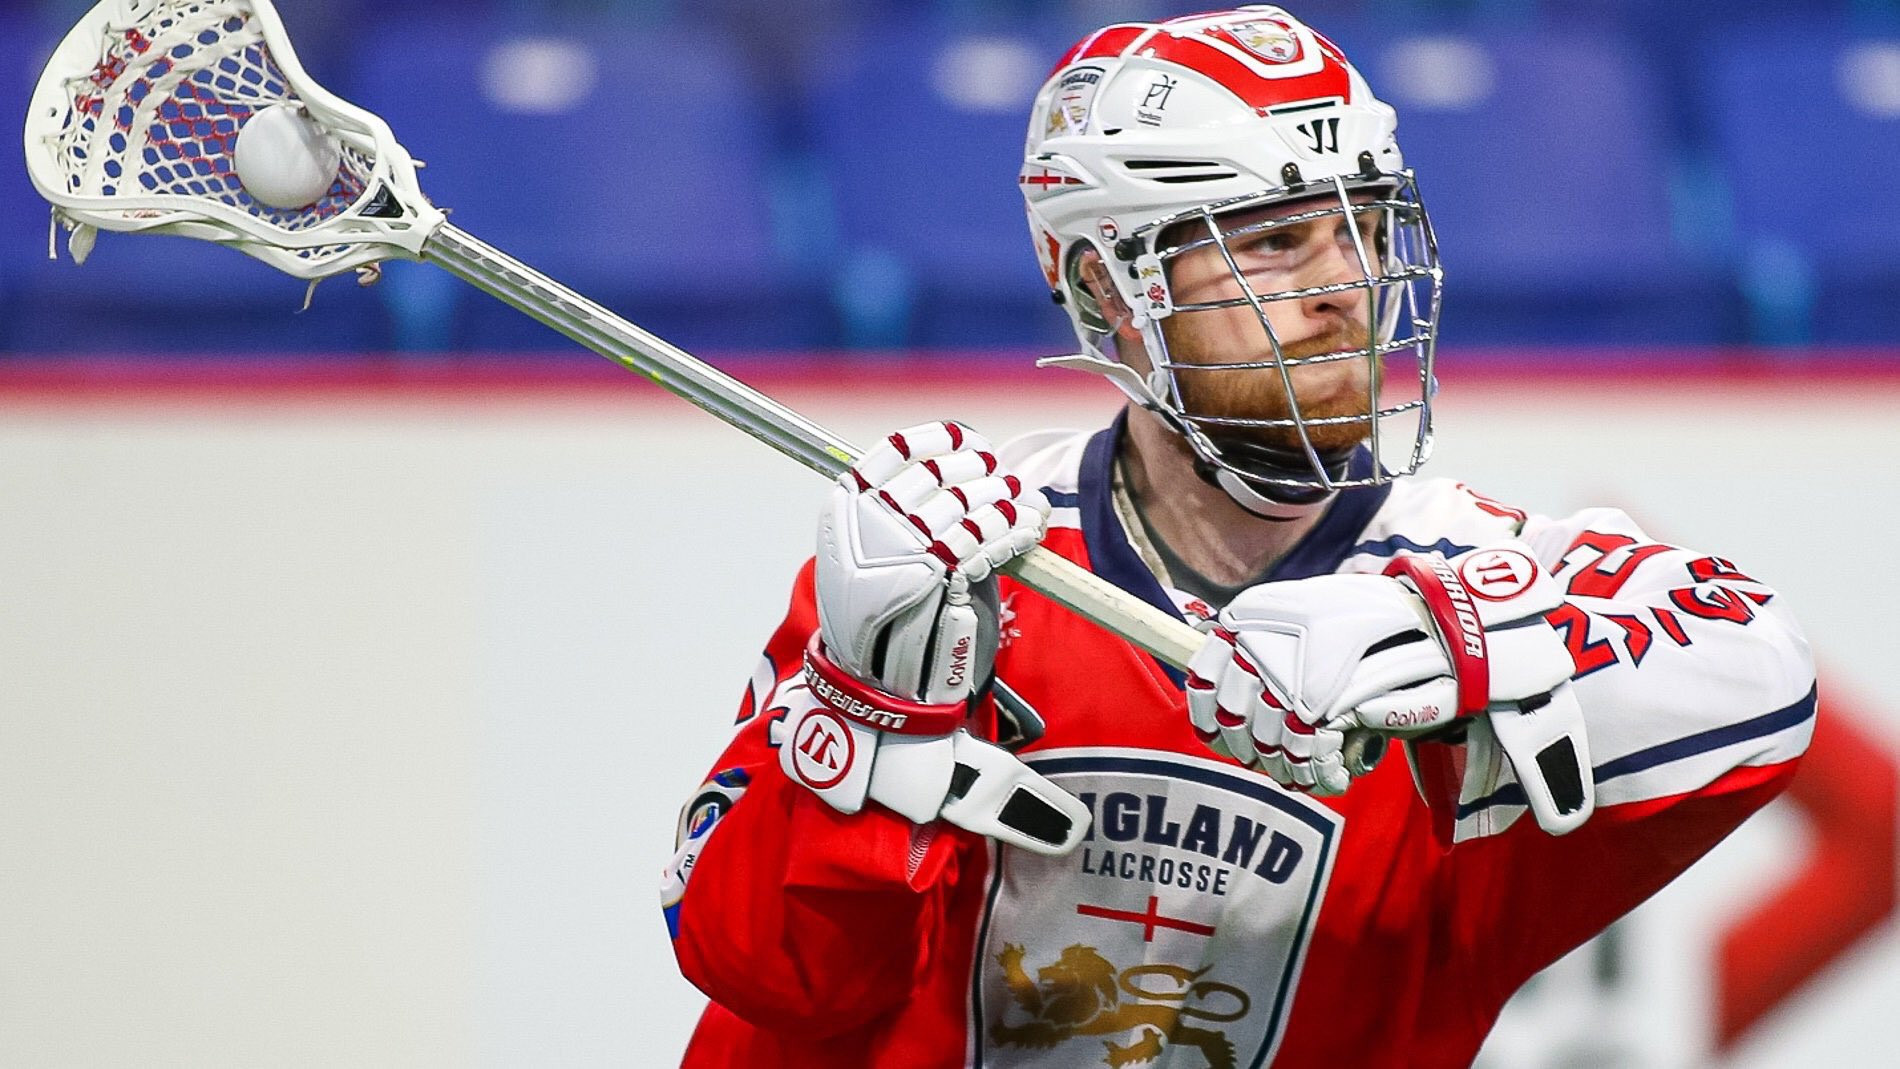 England and Czech Republic reach quarter-finals at World Lacrosse Men's Indoor World Championship